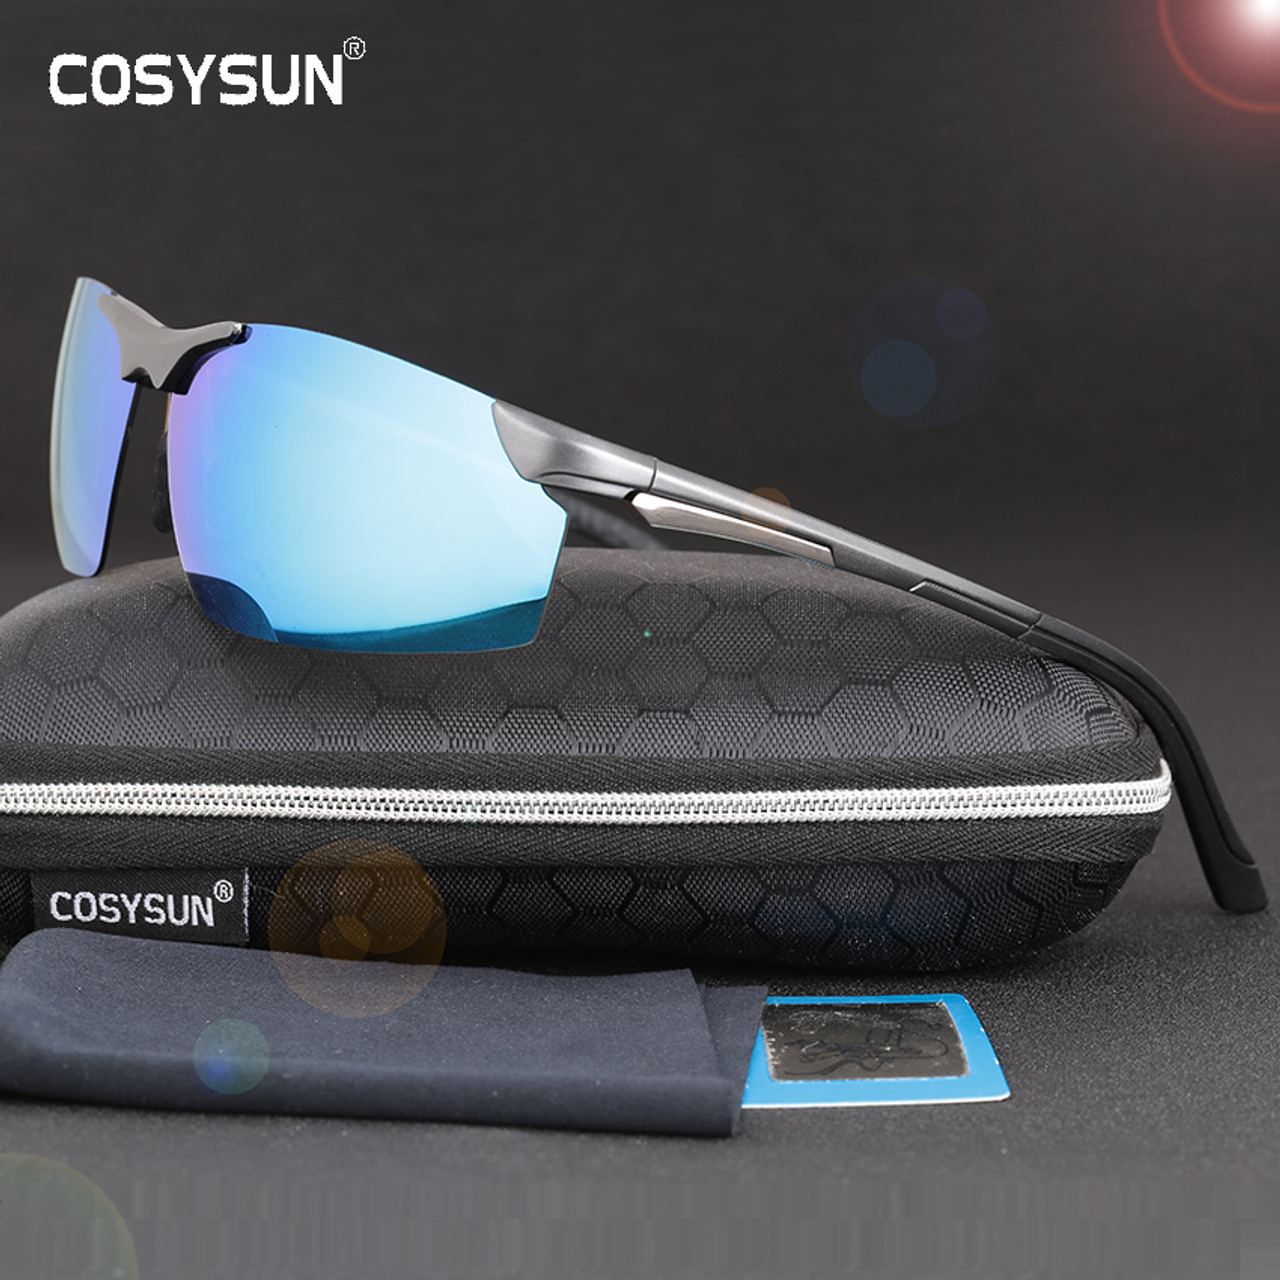 89435498c7d 2017 New Arrival Aluminum Magnesium Men s Sunglasses Square Polarized  Driving Sun Glasses oculos Male Eyewear Accessories ...